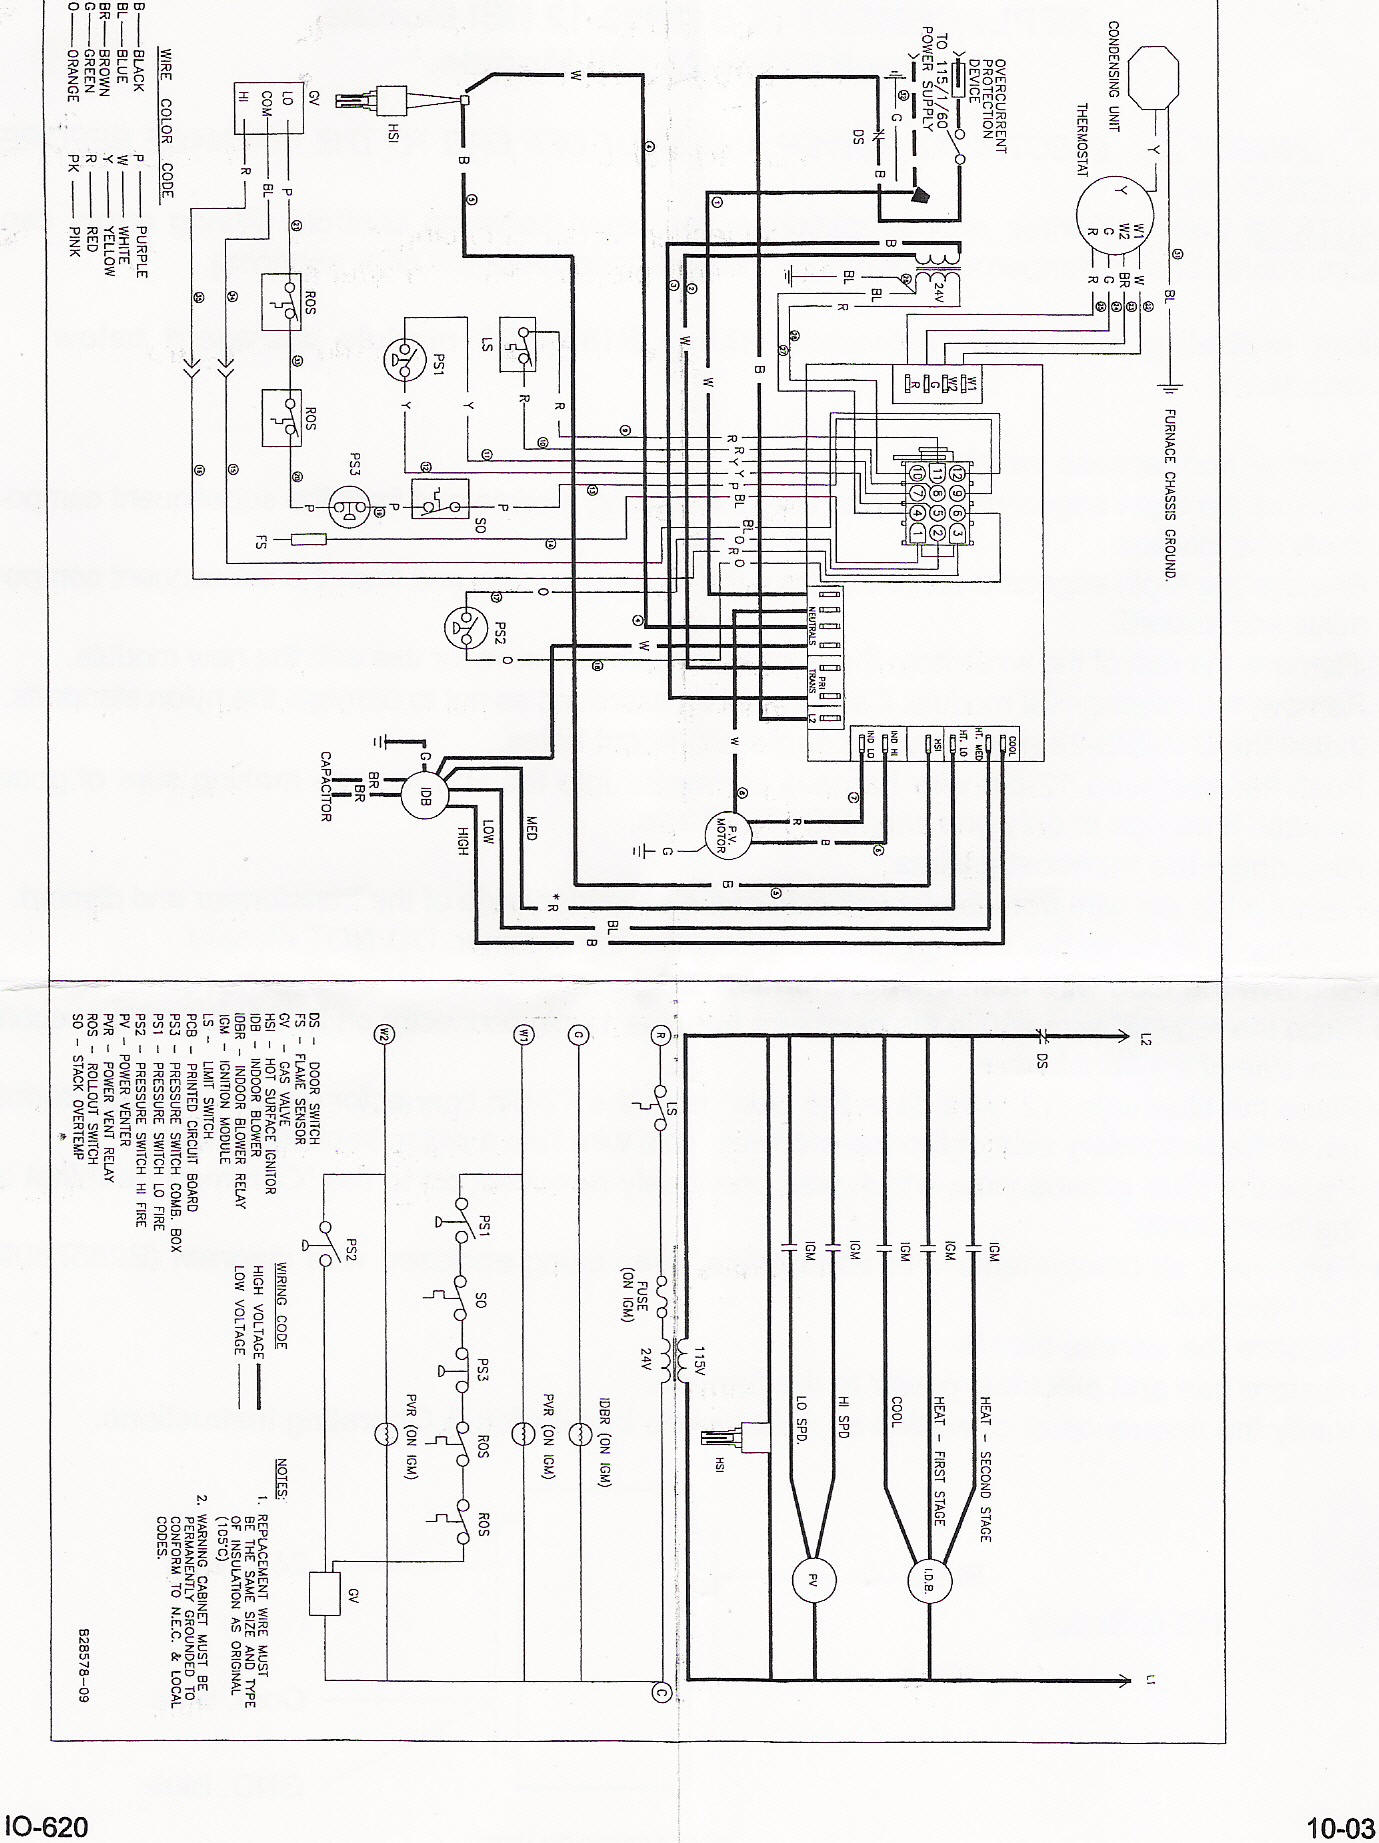 goodman a c wiring diagram with Carrier Furnace Circuit Control Board Wiring Diagram on Goodman Furnace Wiring Diagram B1370738 besides 00001 also Rv Electrical Outlet besides Wiring Diagrams Goodman Air Handler Single Phase as well Techsupportcenter.